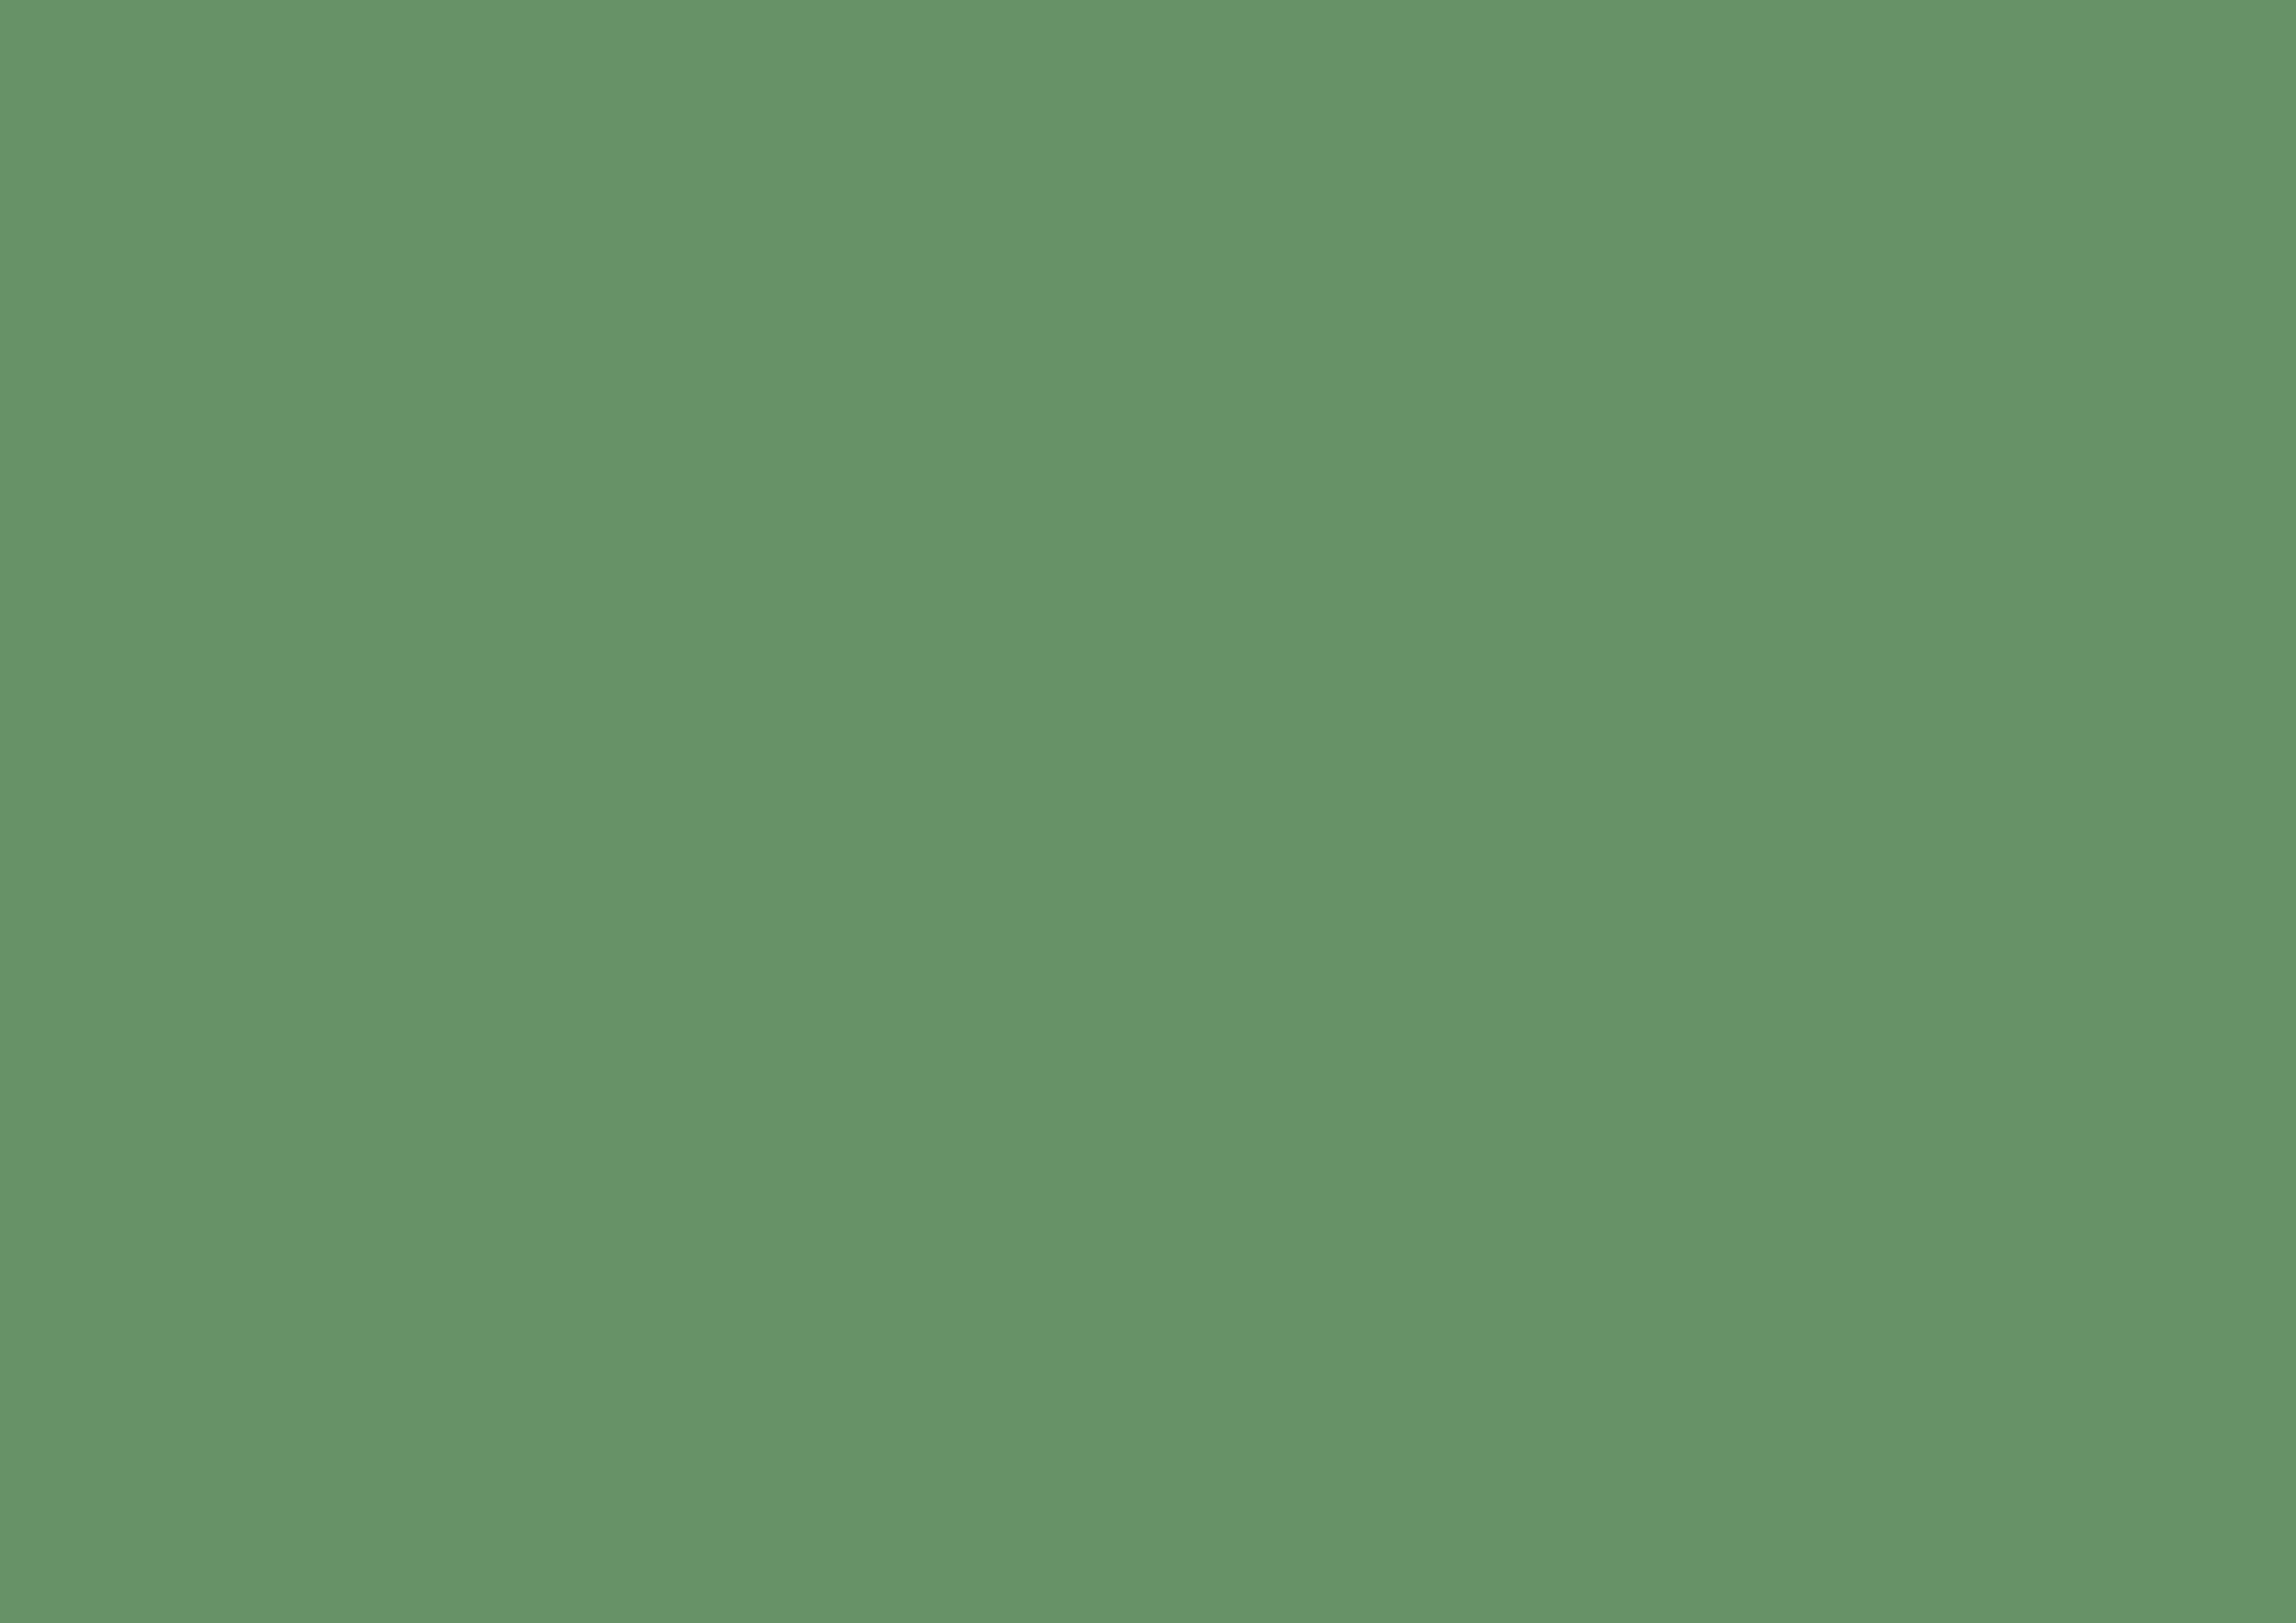 3508x2480 Russian Green Solid Color Background